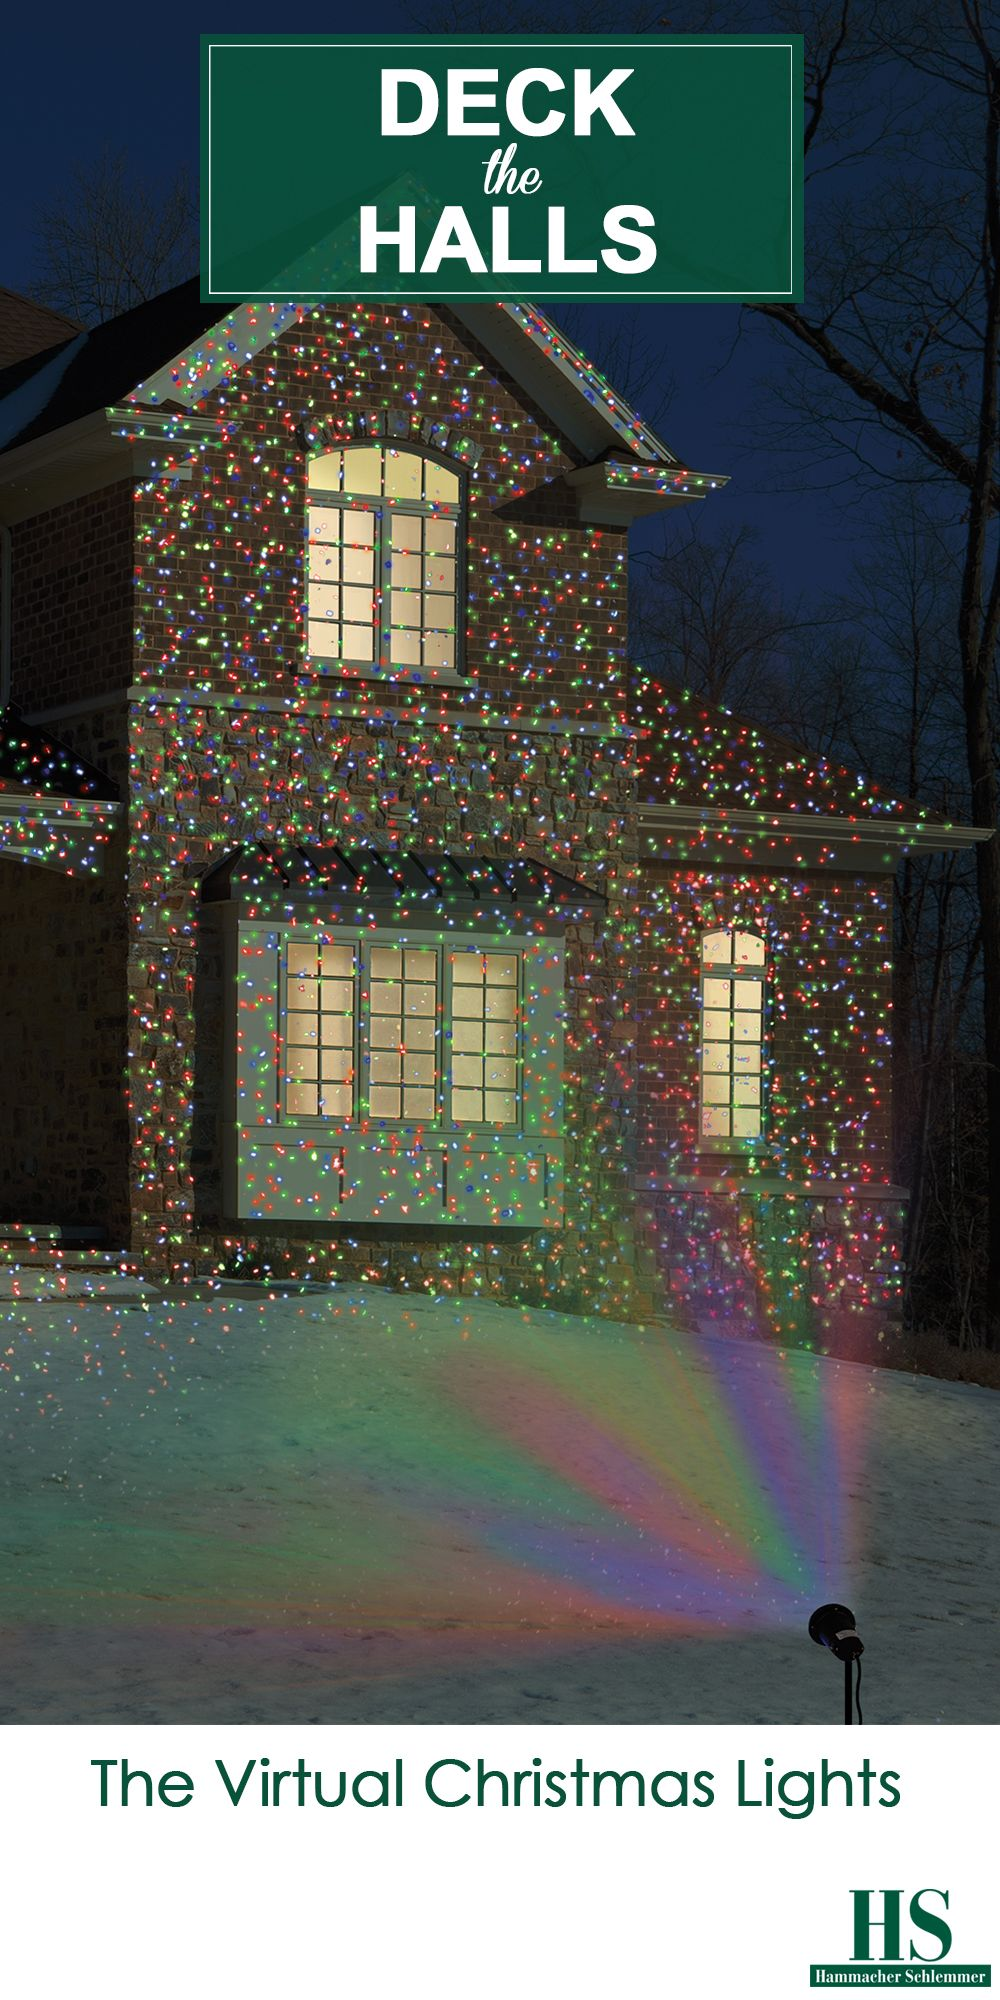 the virtual christmas lights this outdoor projector casts thousands of bulb like dots of colorful light onto a house and landscaping to create festive - Christmas Outdoor Projector